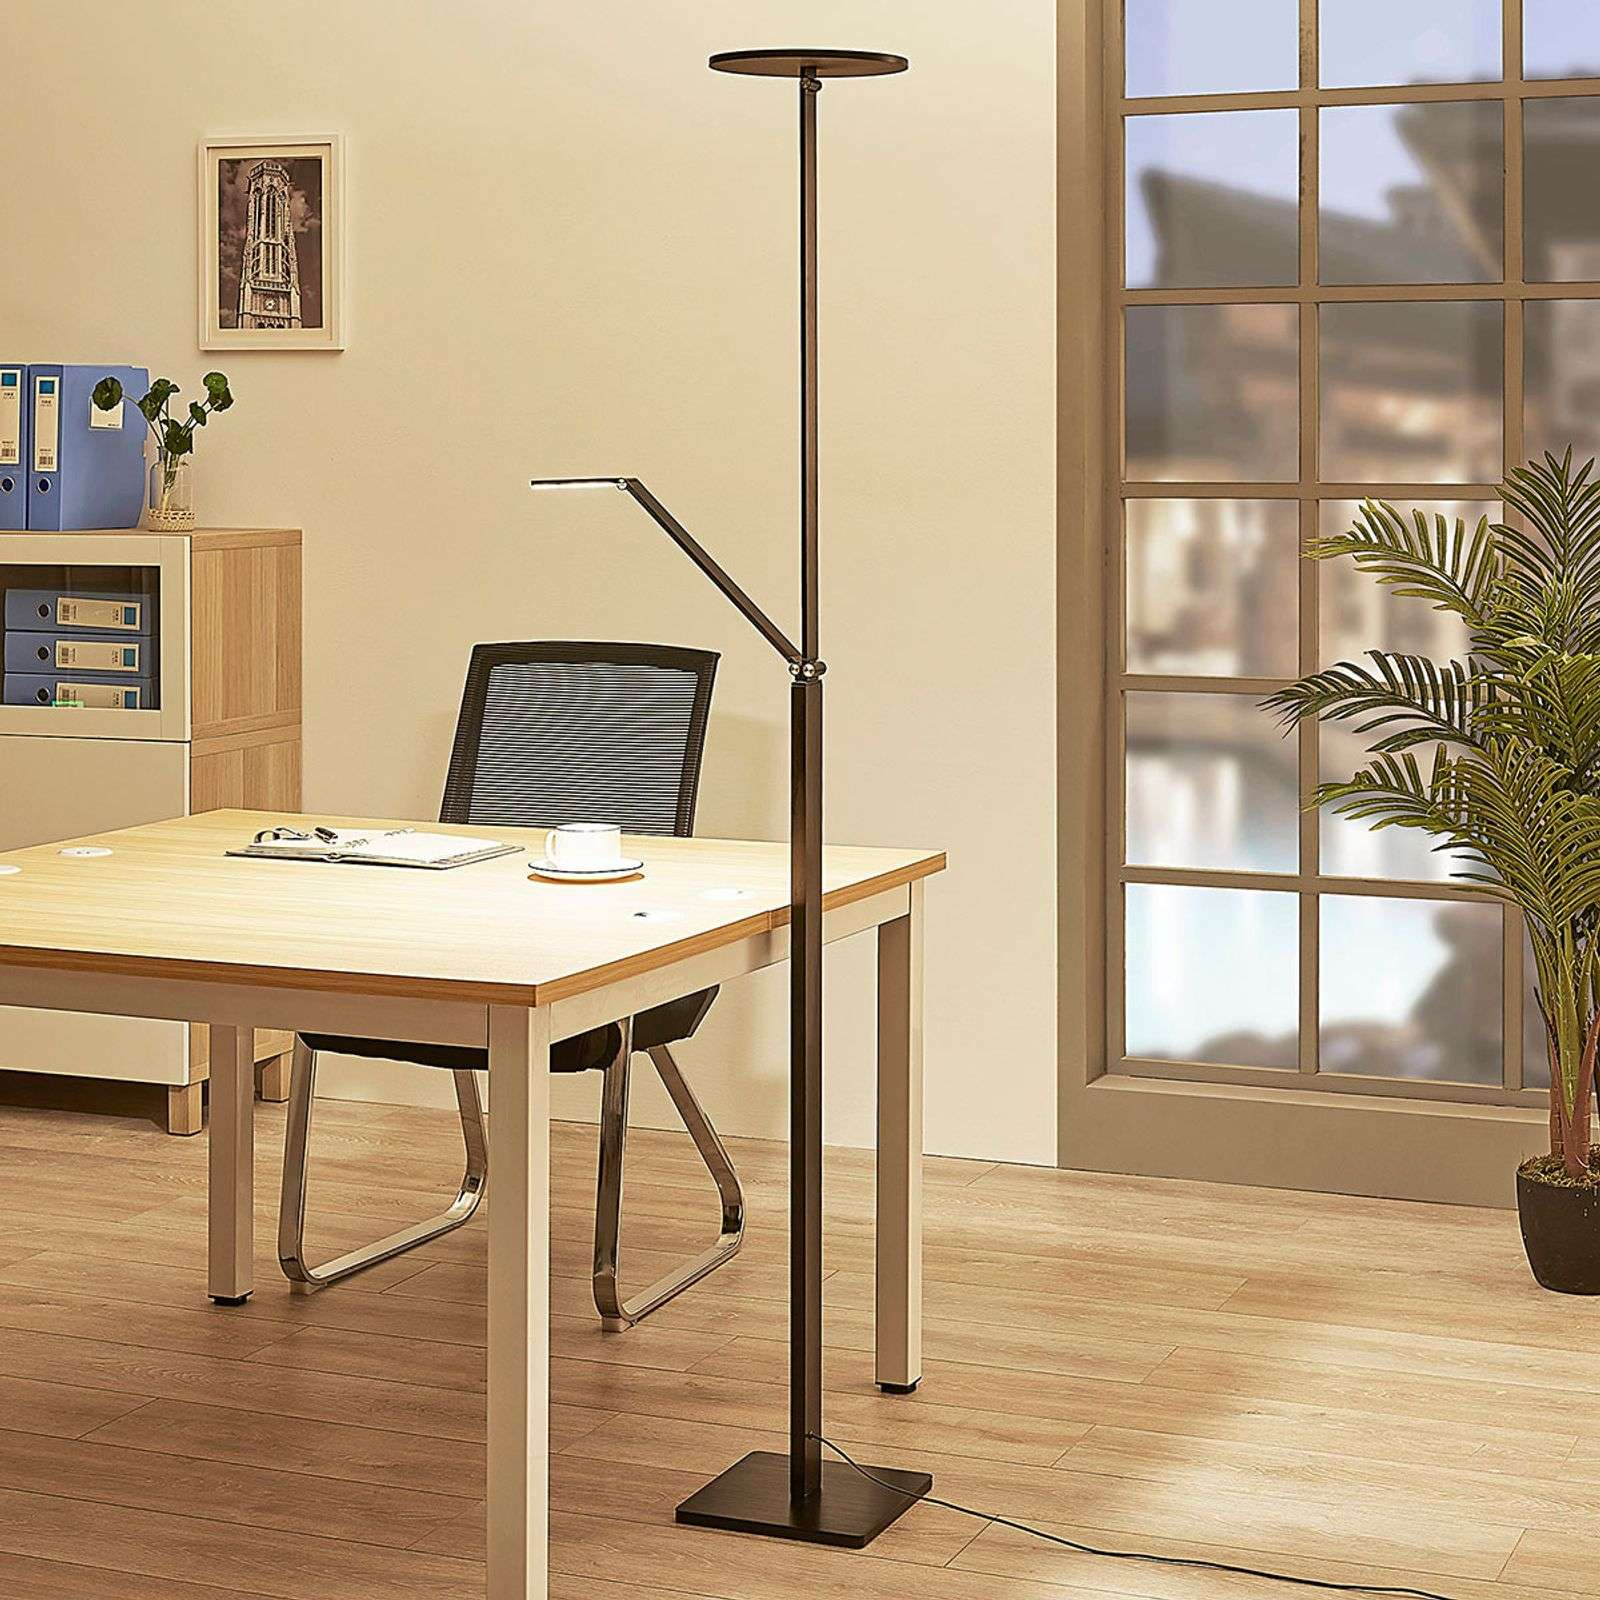 Lampadaire LED indirect Jernika noir, dimmable